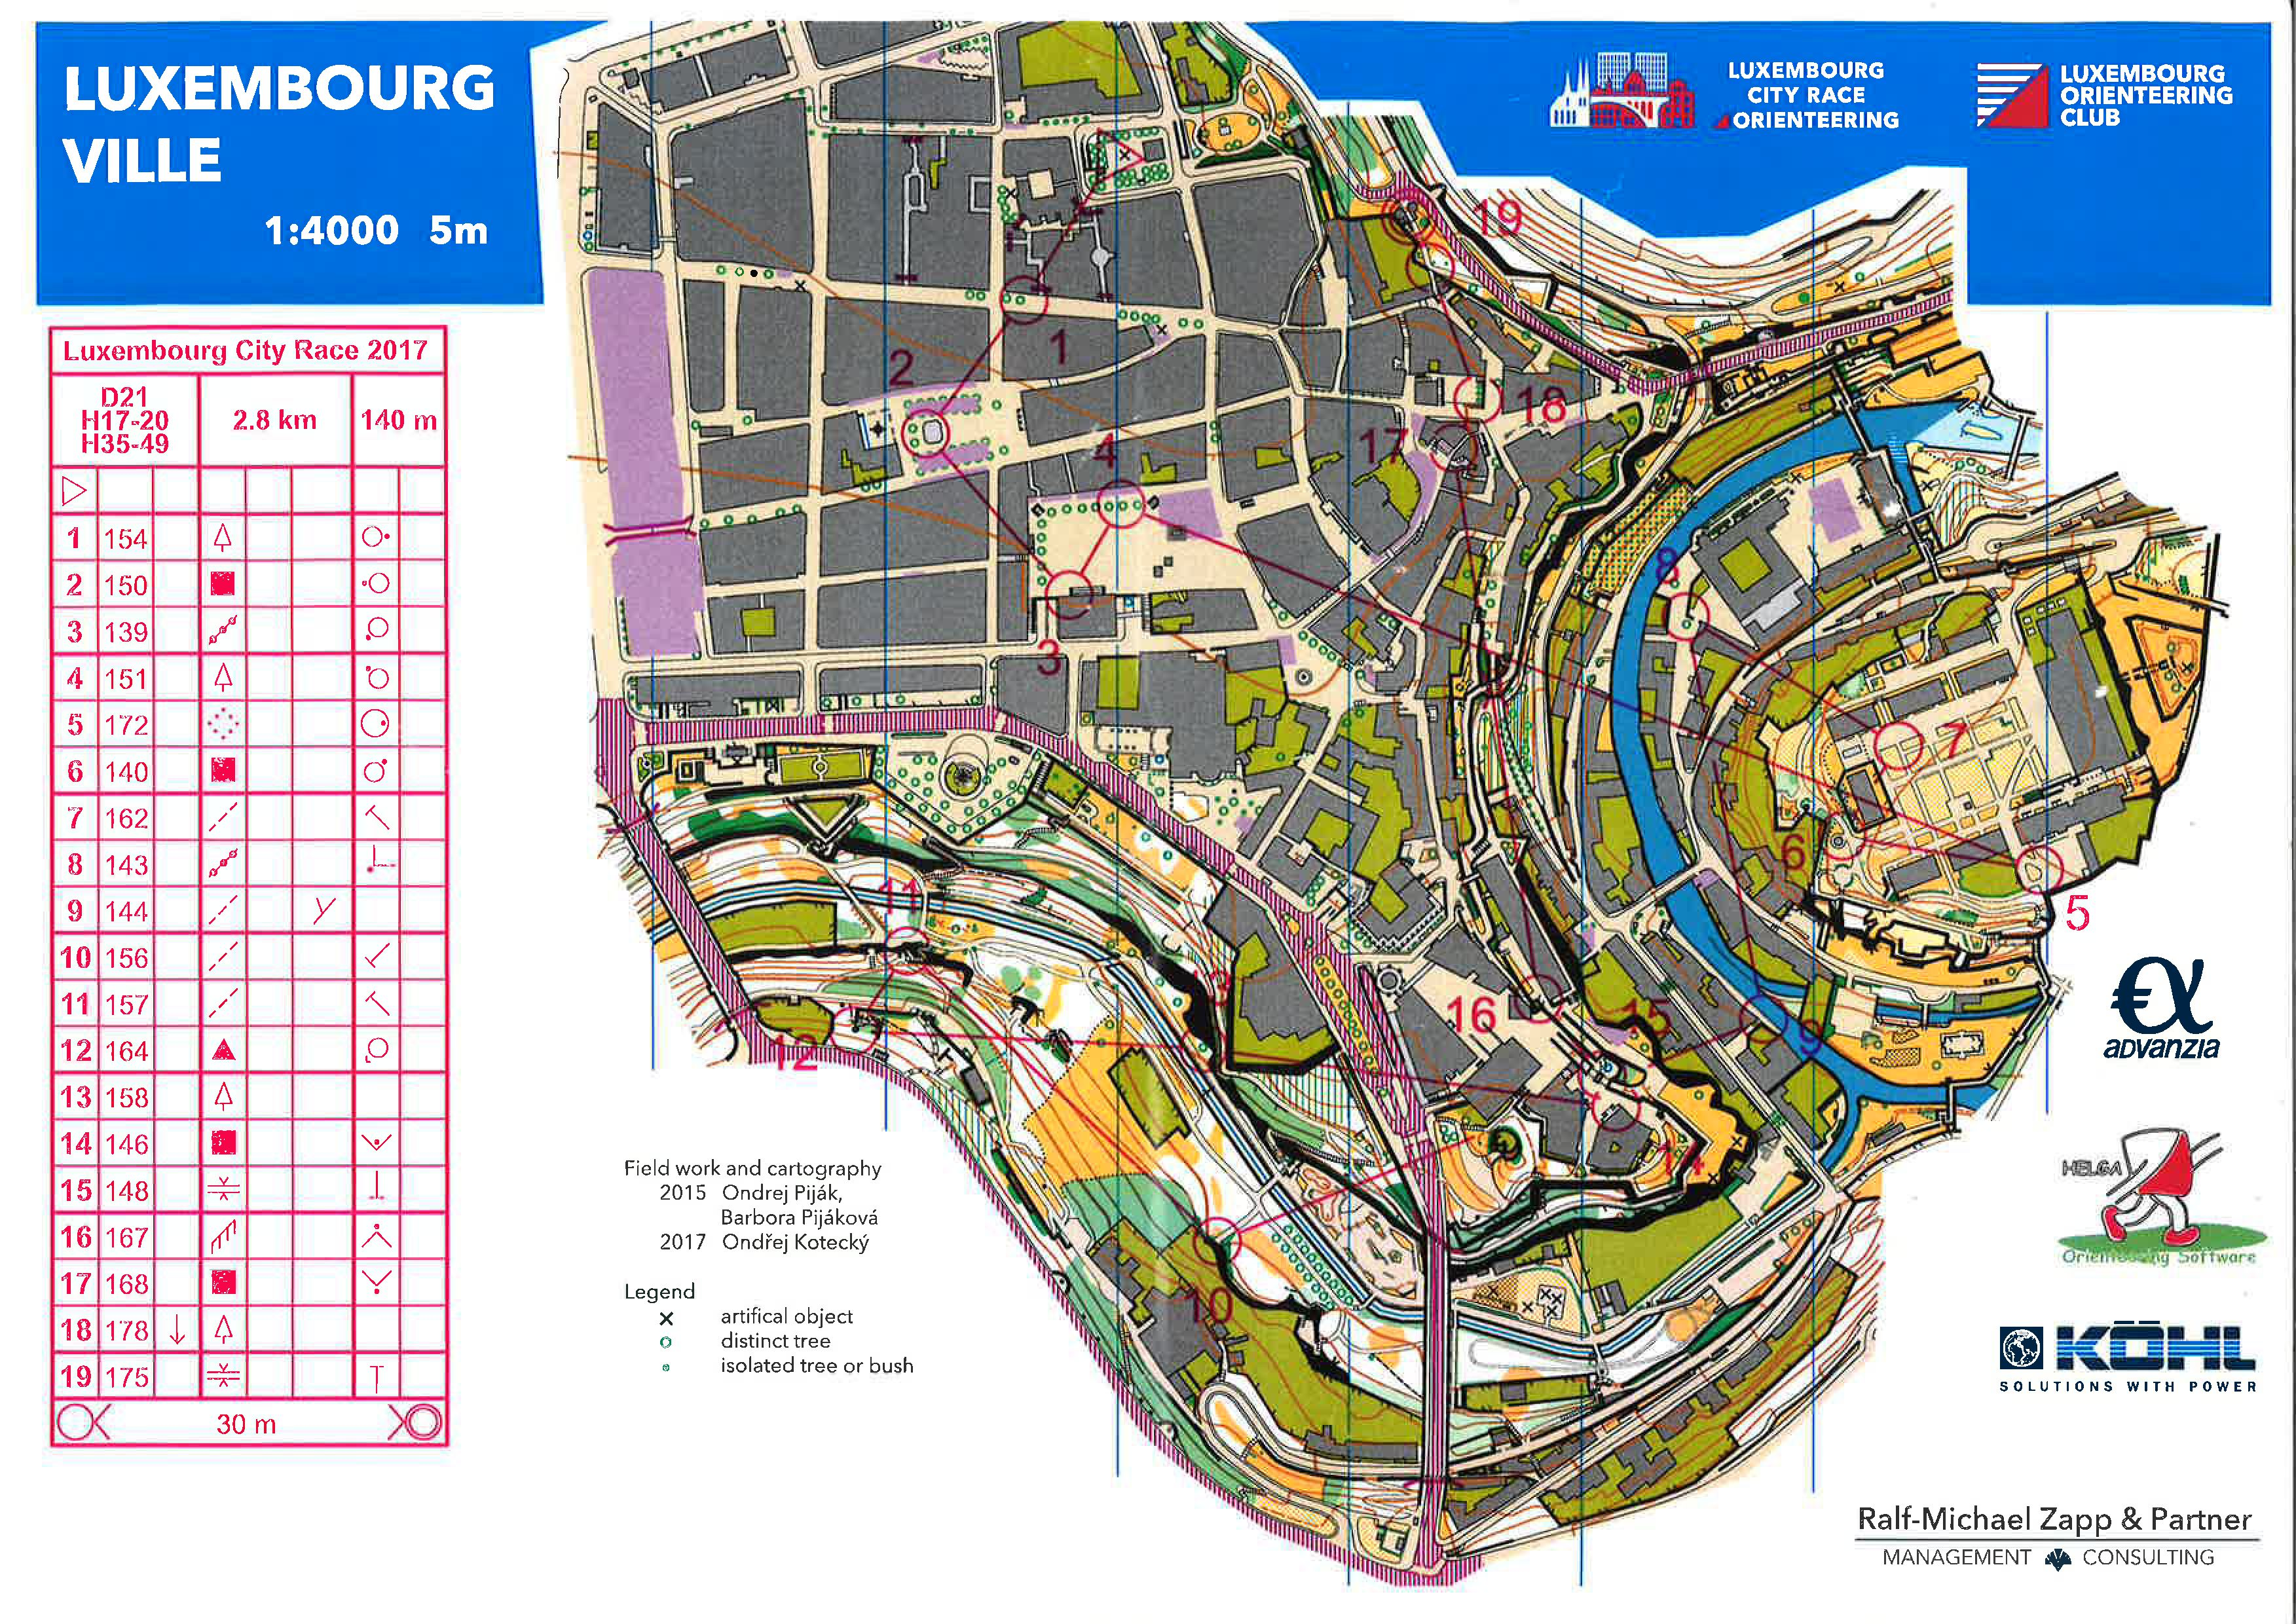 Luxembourg City Race (05-11-2017)